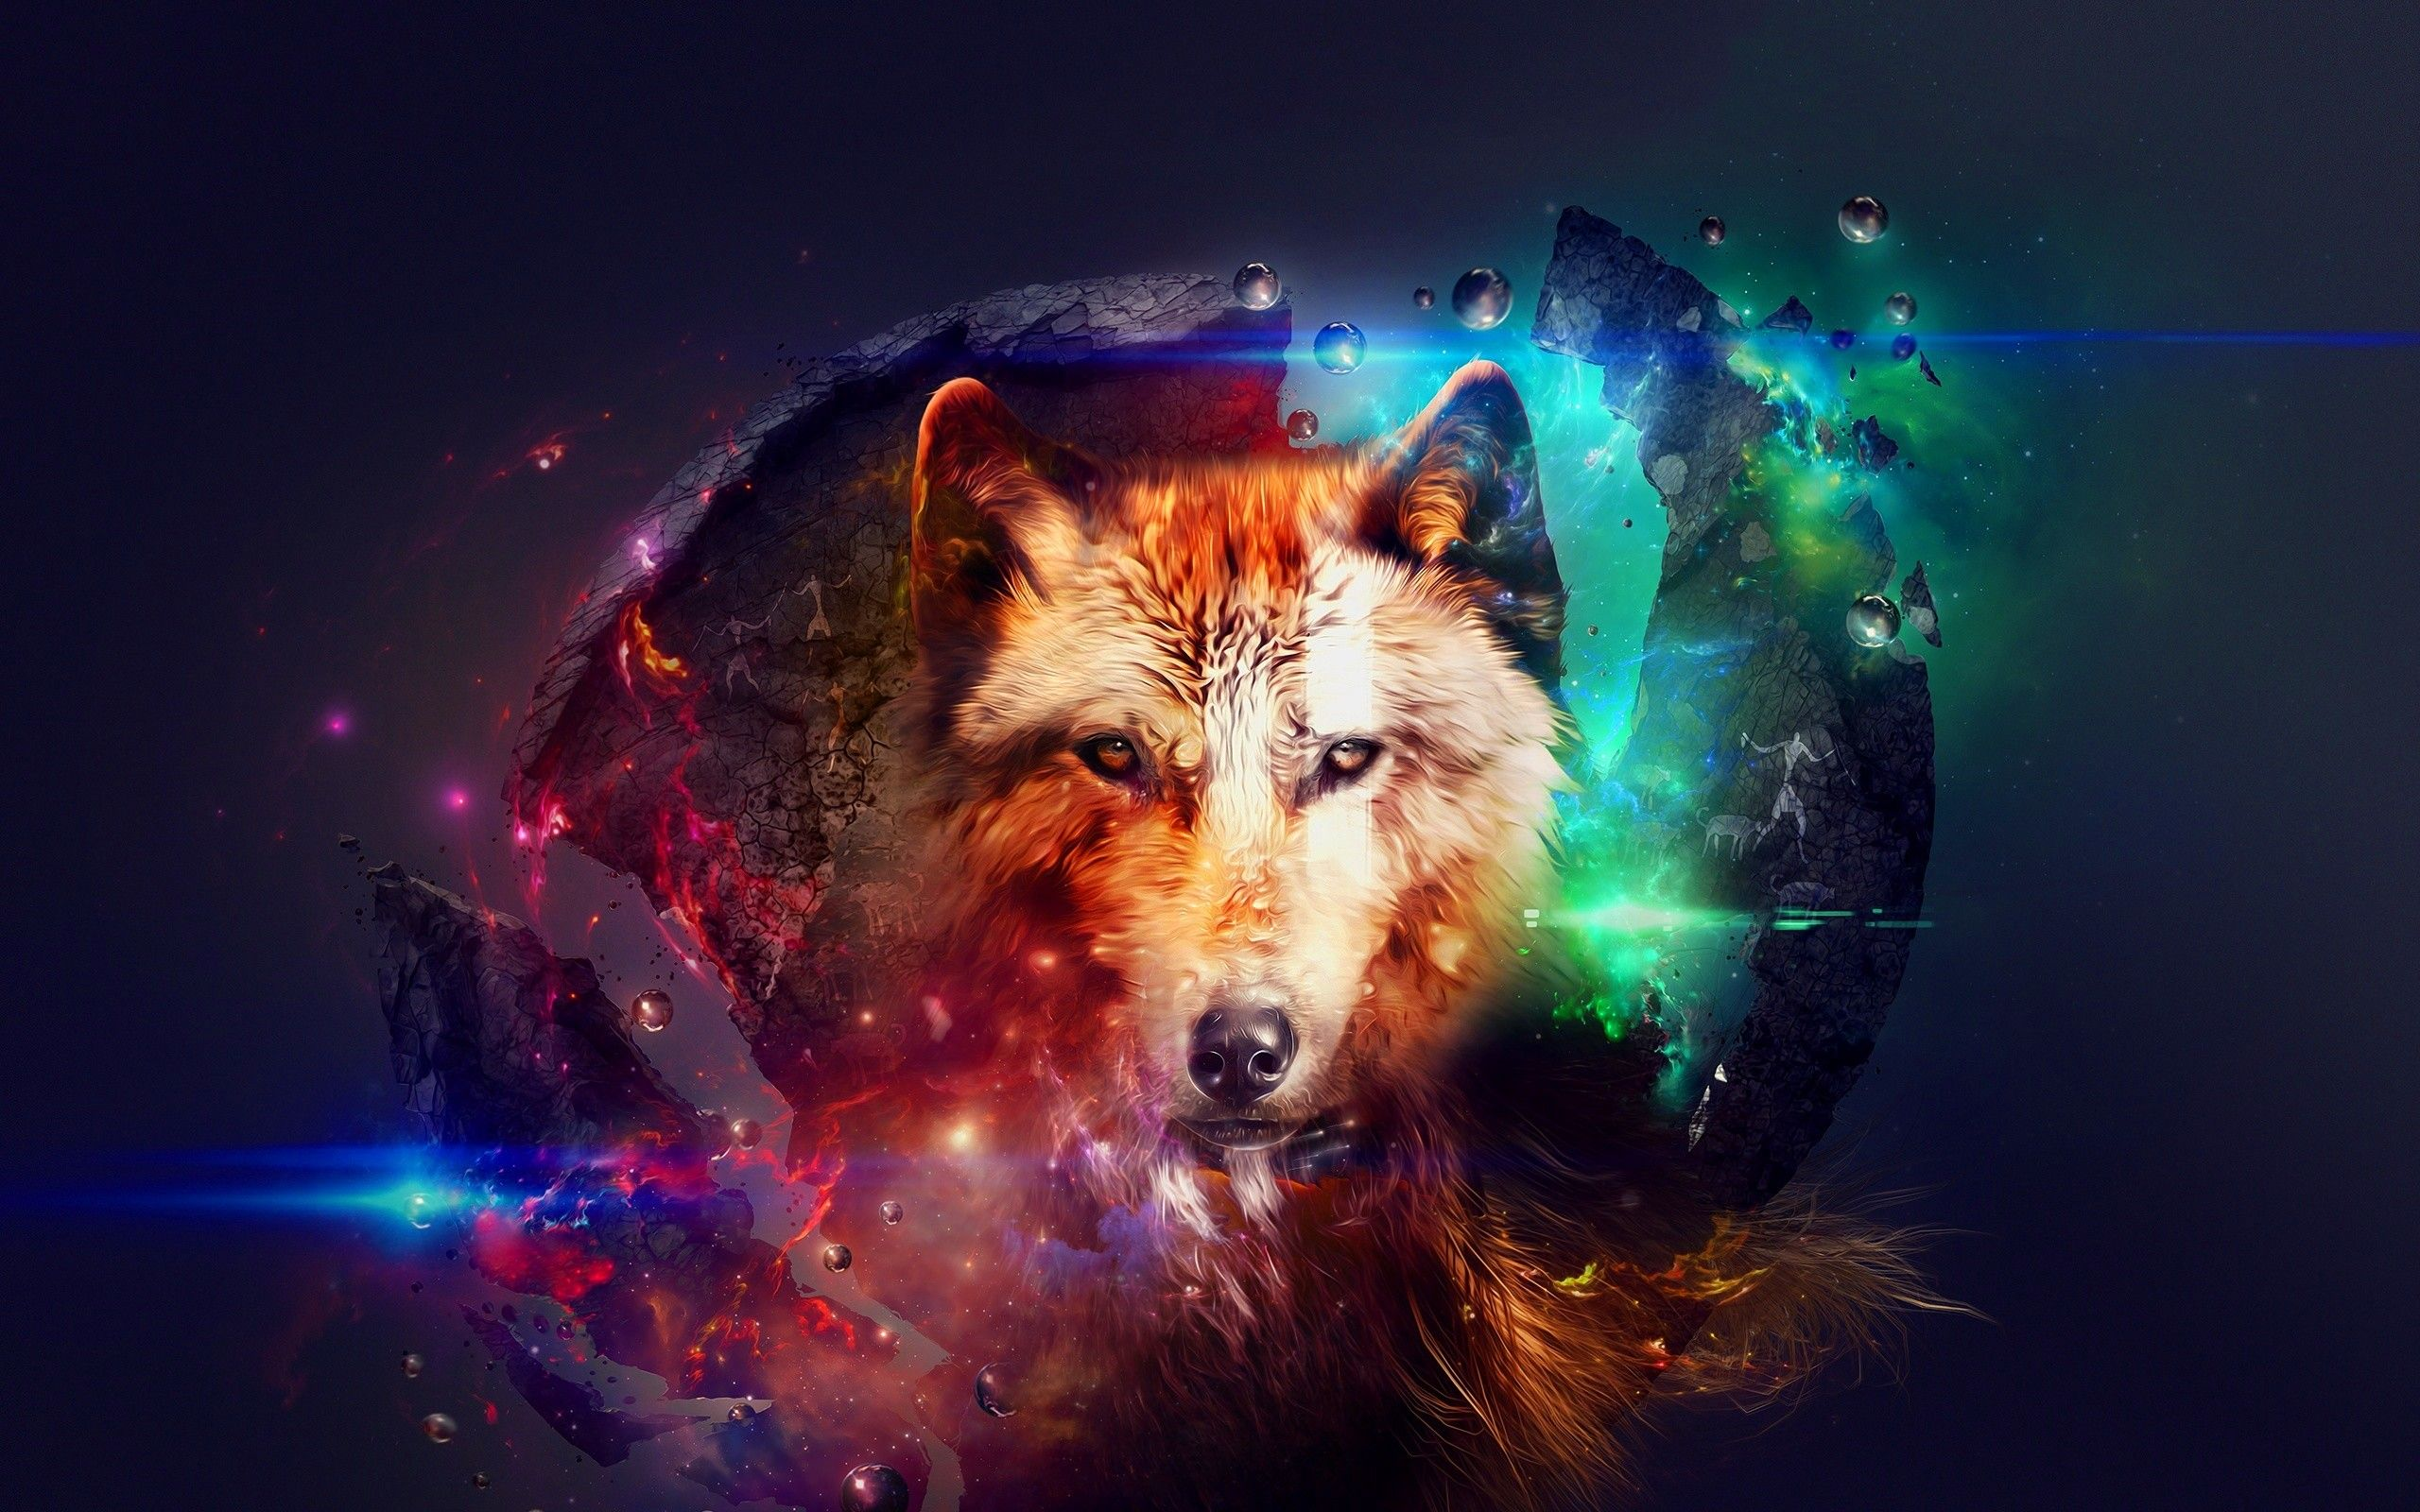 Galaxy Wolf Wallpapers Top Free Galaxy Wolf Backgrounds Wallpaperaccess